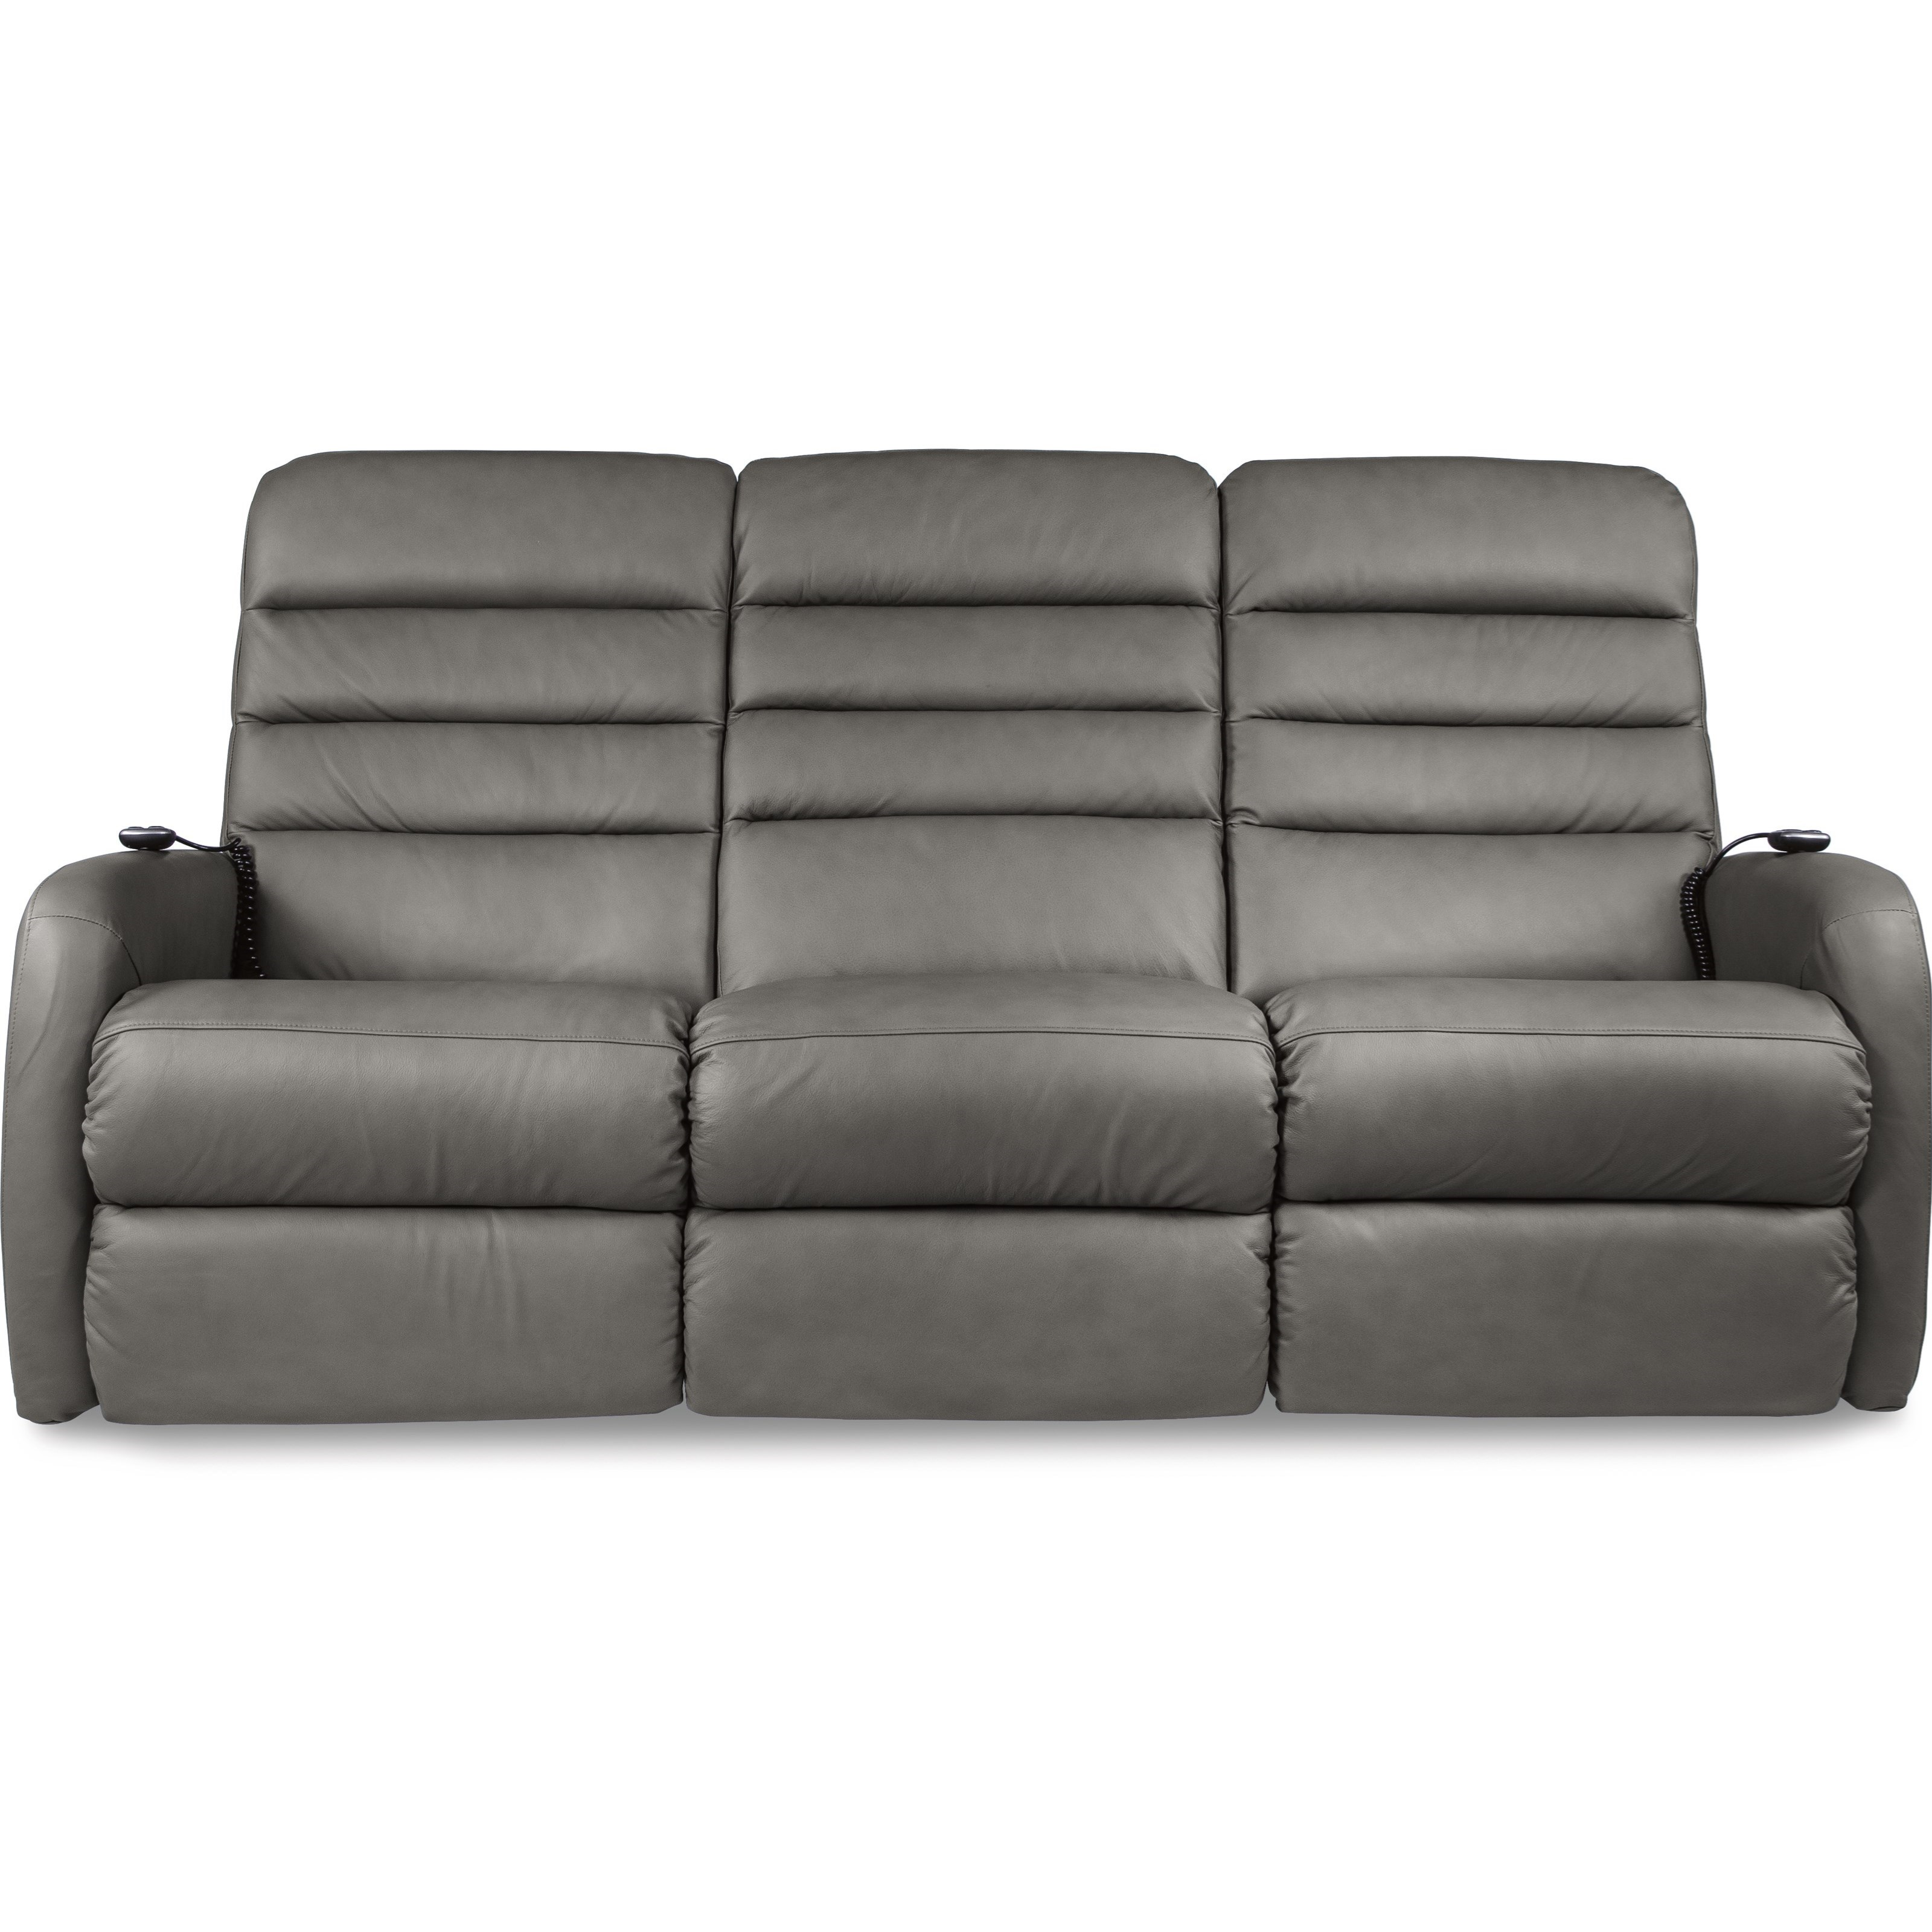 Stupendous Forum Contemporary Power Recline Xrw Wall Saver Reclining Sofa With Adjustable Head And Lumbar By La Z Boy At Rotmans Machost Co Dining Chair Design Ideas Machostcouk